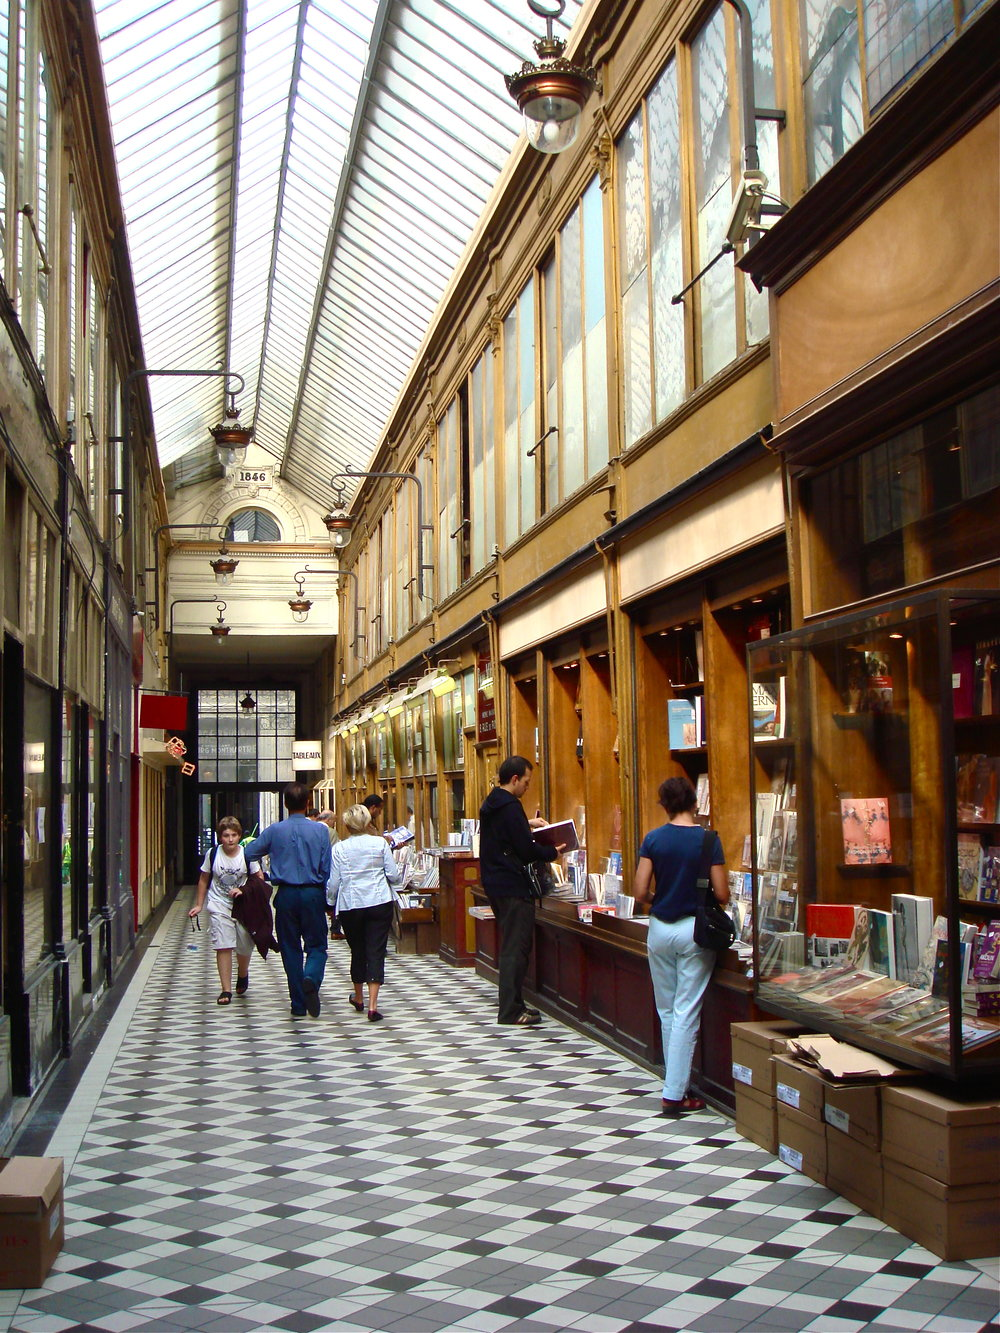 The Covered Passageways of Paris